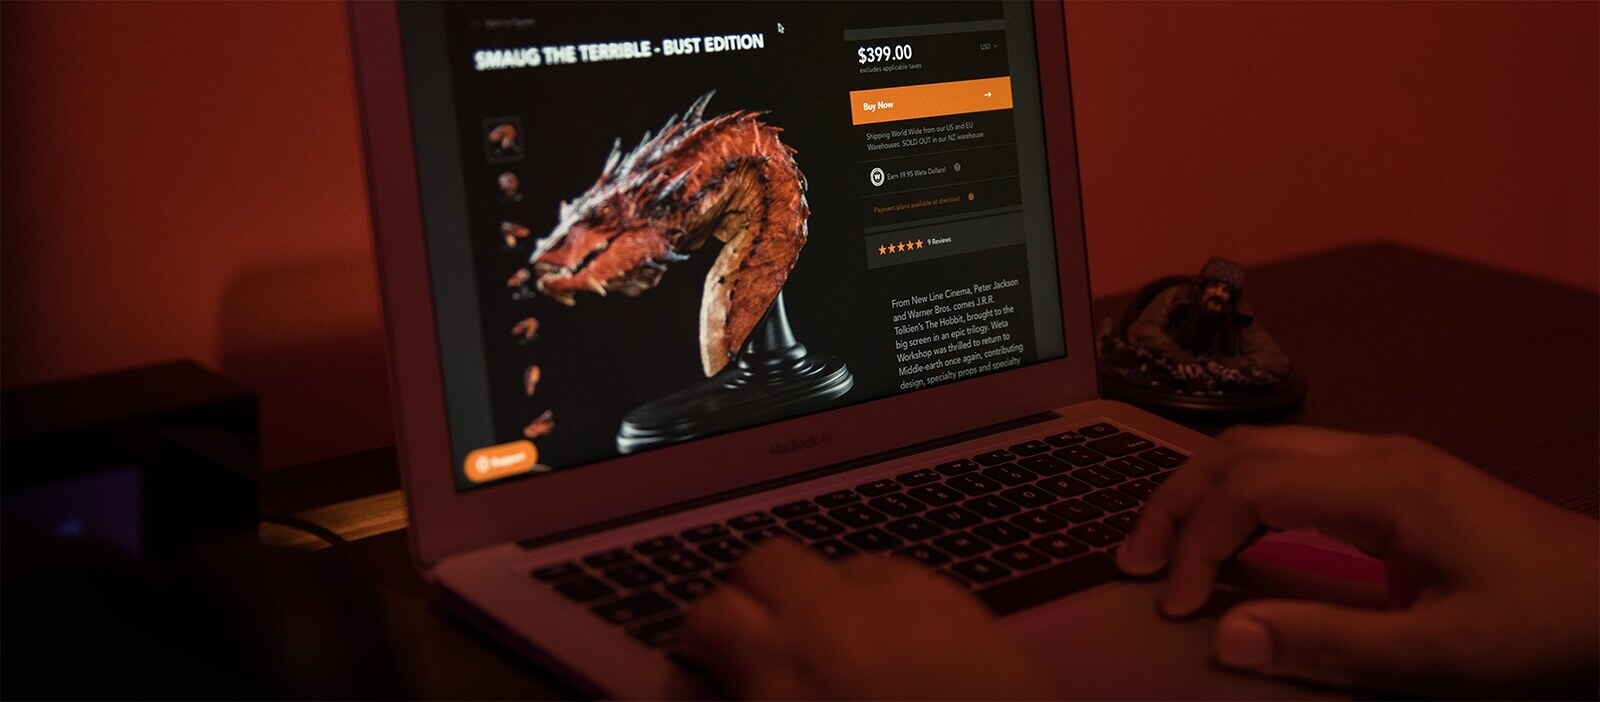 Weta Workshop website on laptop